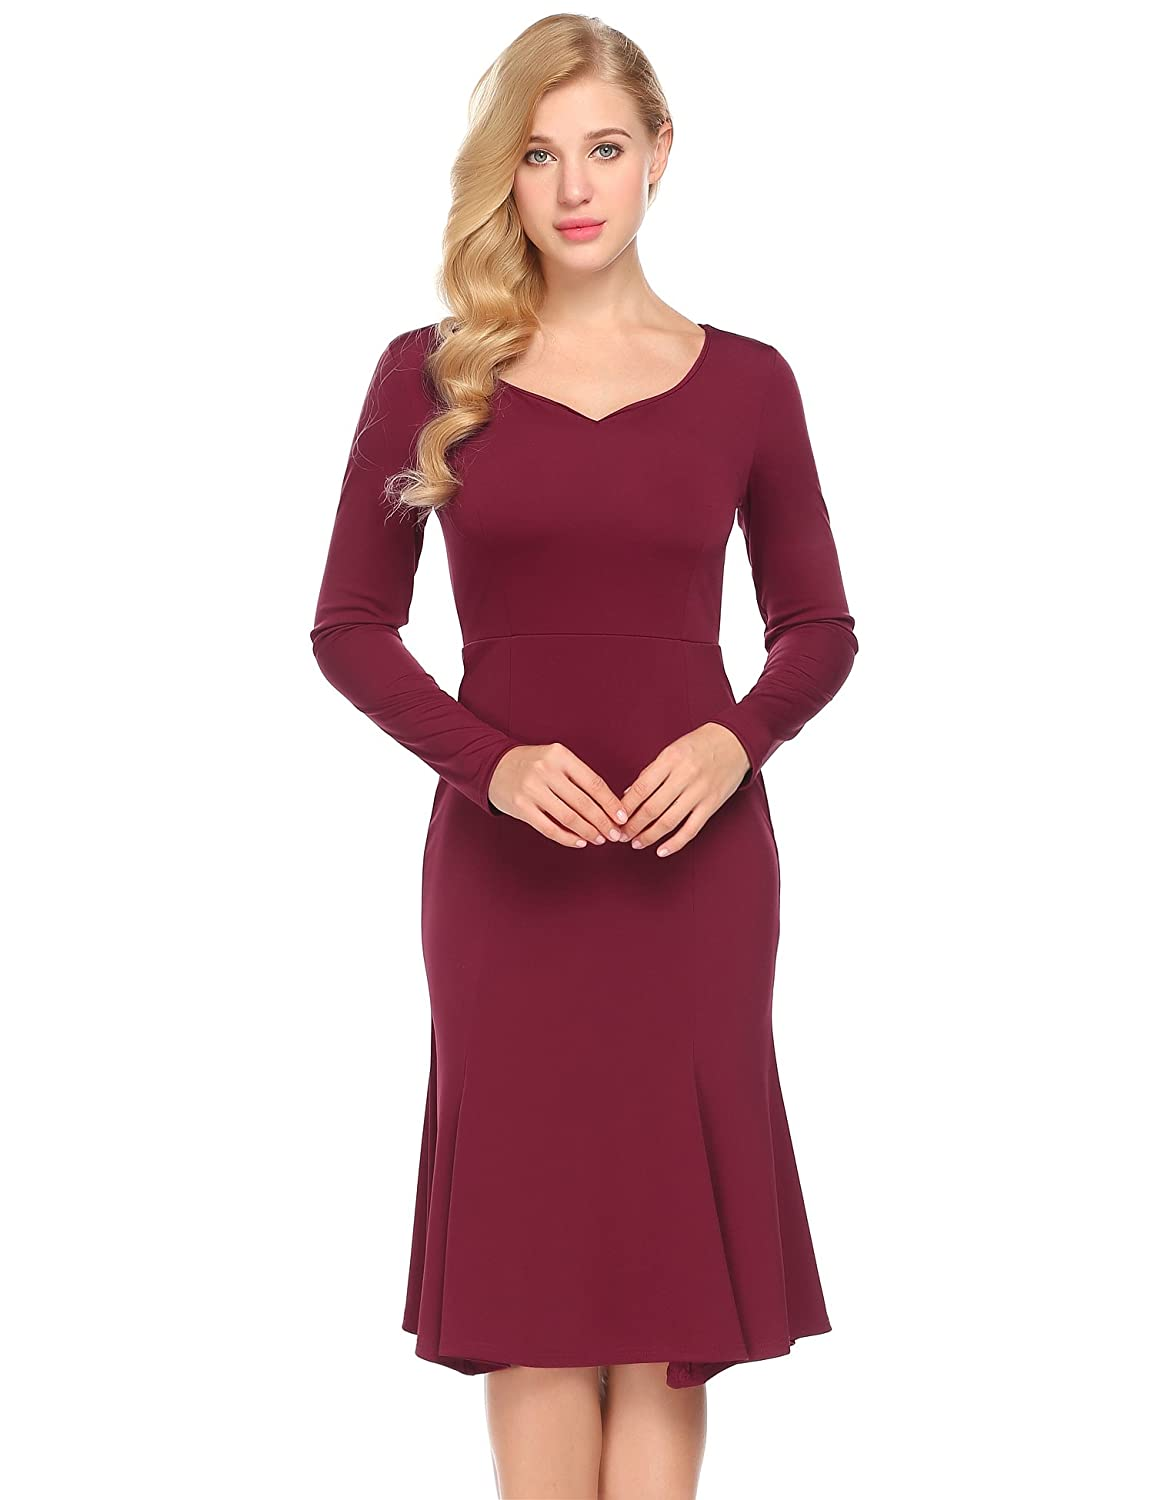 Meaneor Damen Elegant Langarm Abendkleid 50s Vintage Business Kleid ...